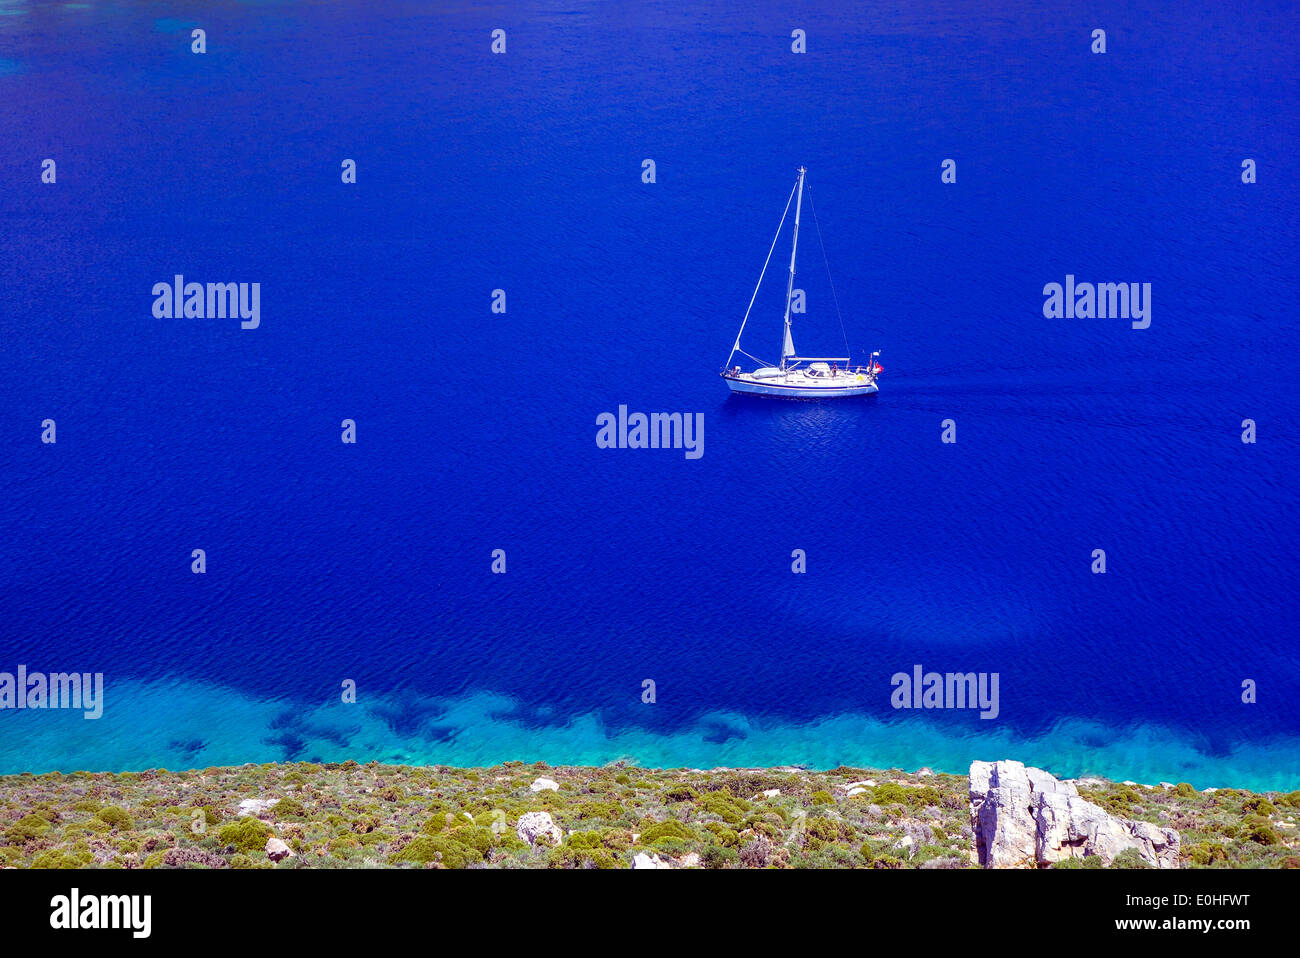 White yacht on blue sea, bay with surrounding hills, Greece Stock Photo